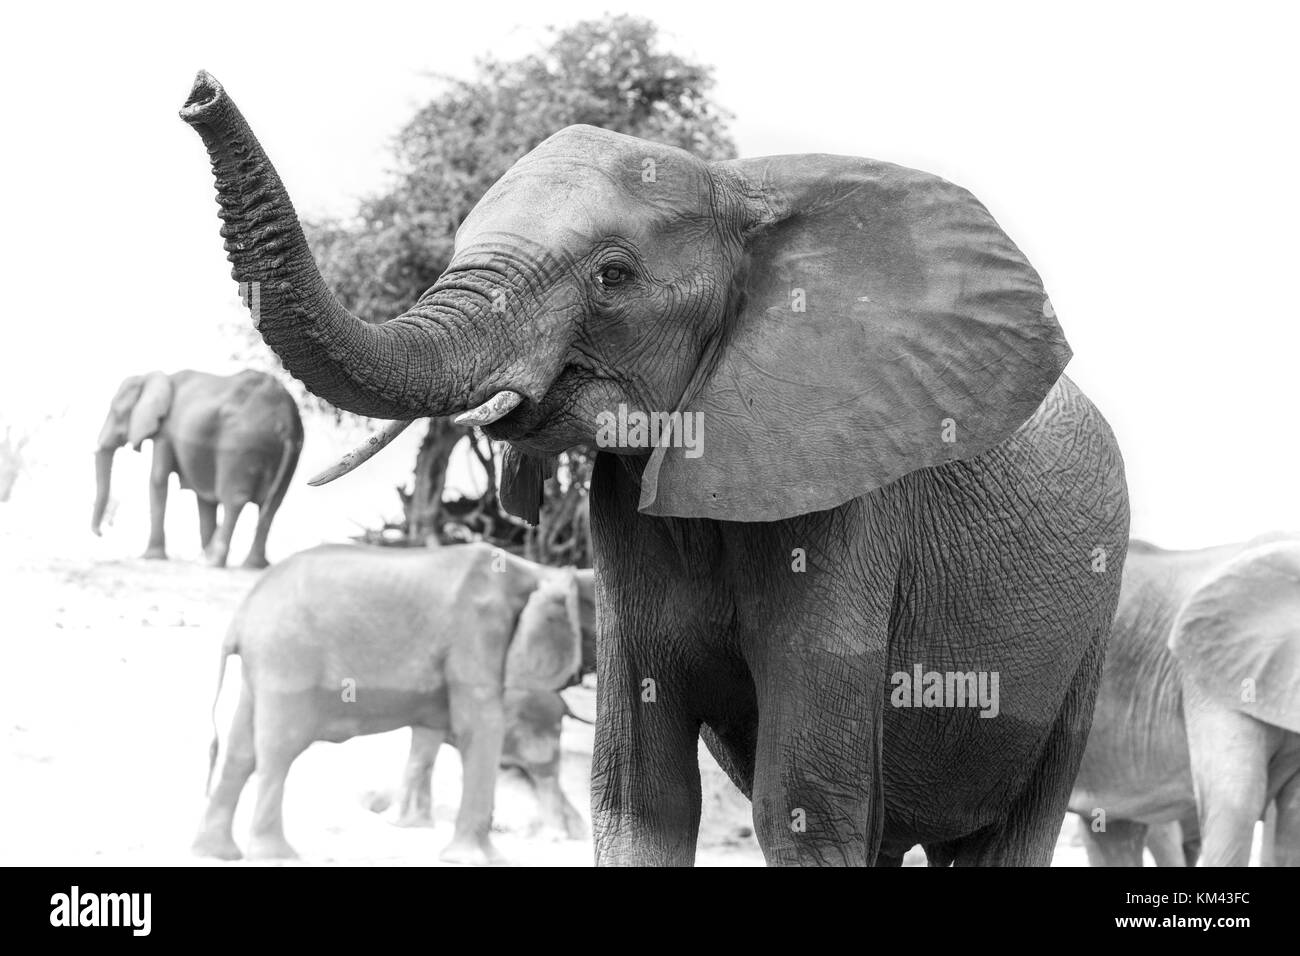 black and white portrait of an African Chobe elephant with raised trunk - Stock Image